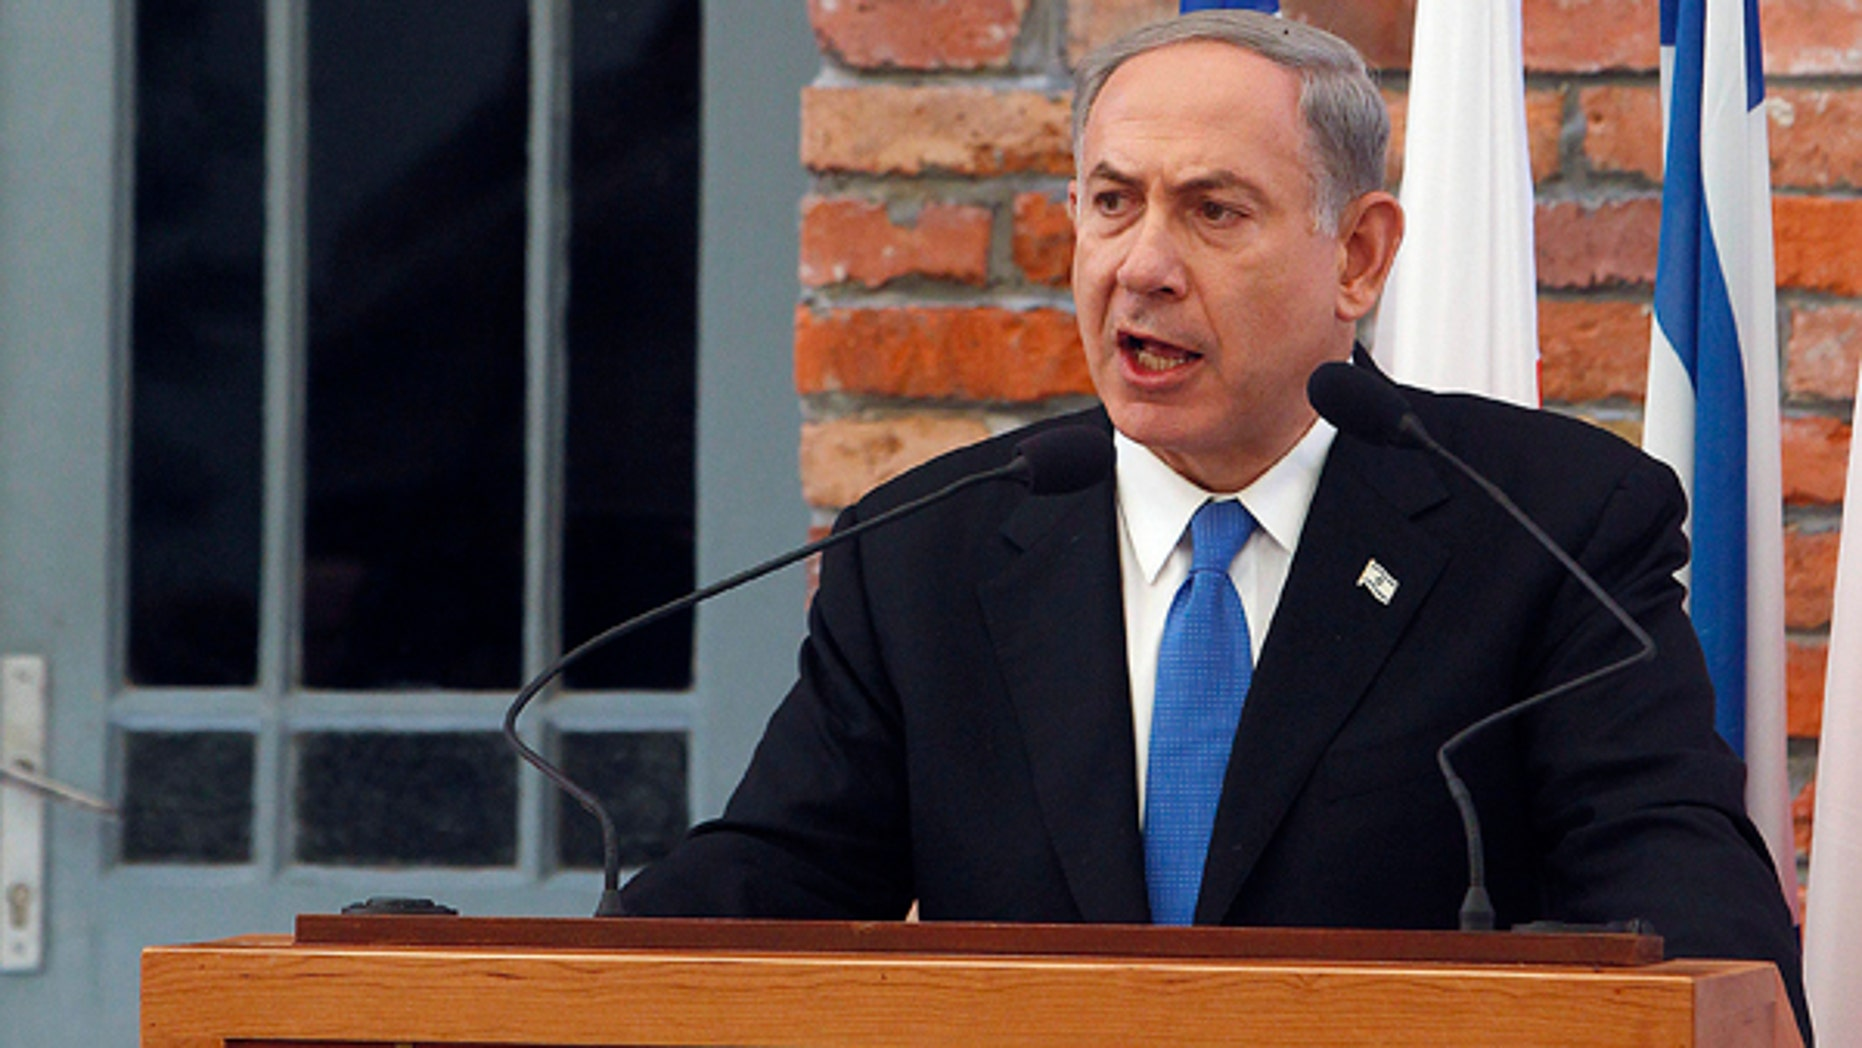 June 13, 2013: Israeli Prime Minister Benjamin Netanyahu delivers a speech following the opening of a new pavilion at the former Nazi death camp of Auschwitz, in Oswiecim, Poland. The exhibition in Bloc 27 is meant to educate visitors about the Holocaust and the Nazi Germanys quest to exterminate the Jewish people.